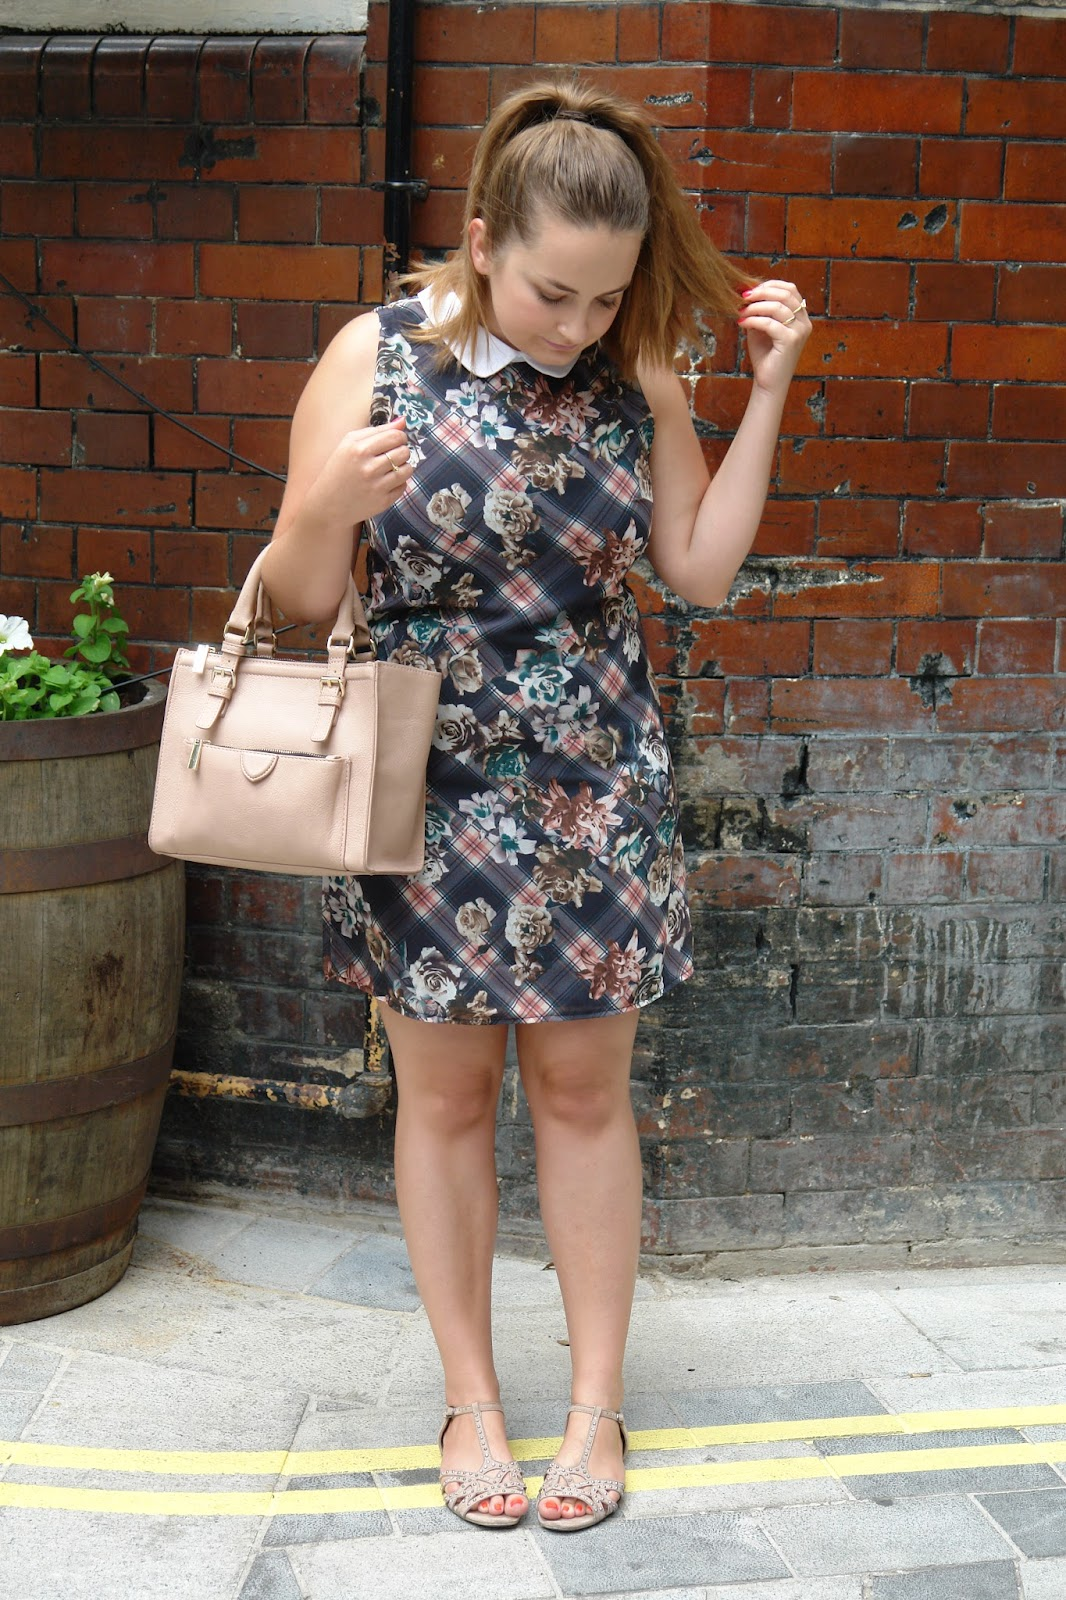 WHAT I WORE TODAY: clueless dress, dresses, WHAT I WORE TODAY, WIWT, shoes, New Look, Zara, bags, collar, ZARA Mini City Bag, outfit, OOTD, fashion blogger, UK blog